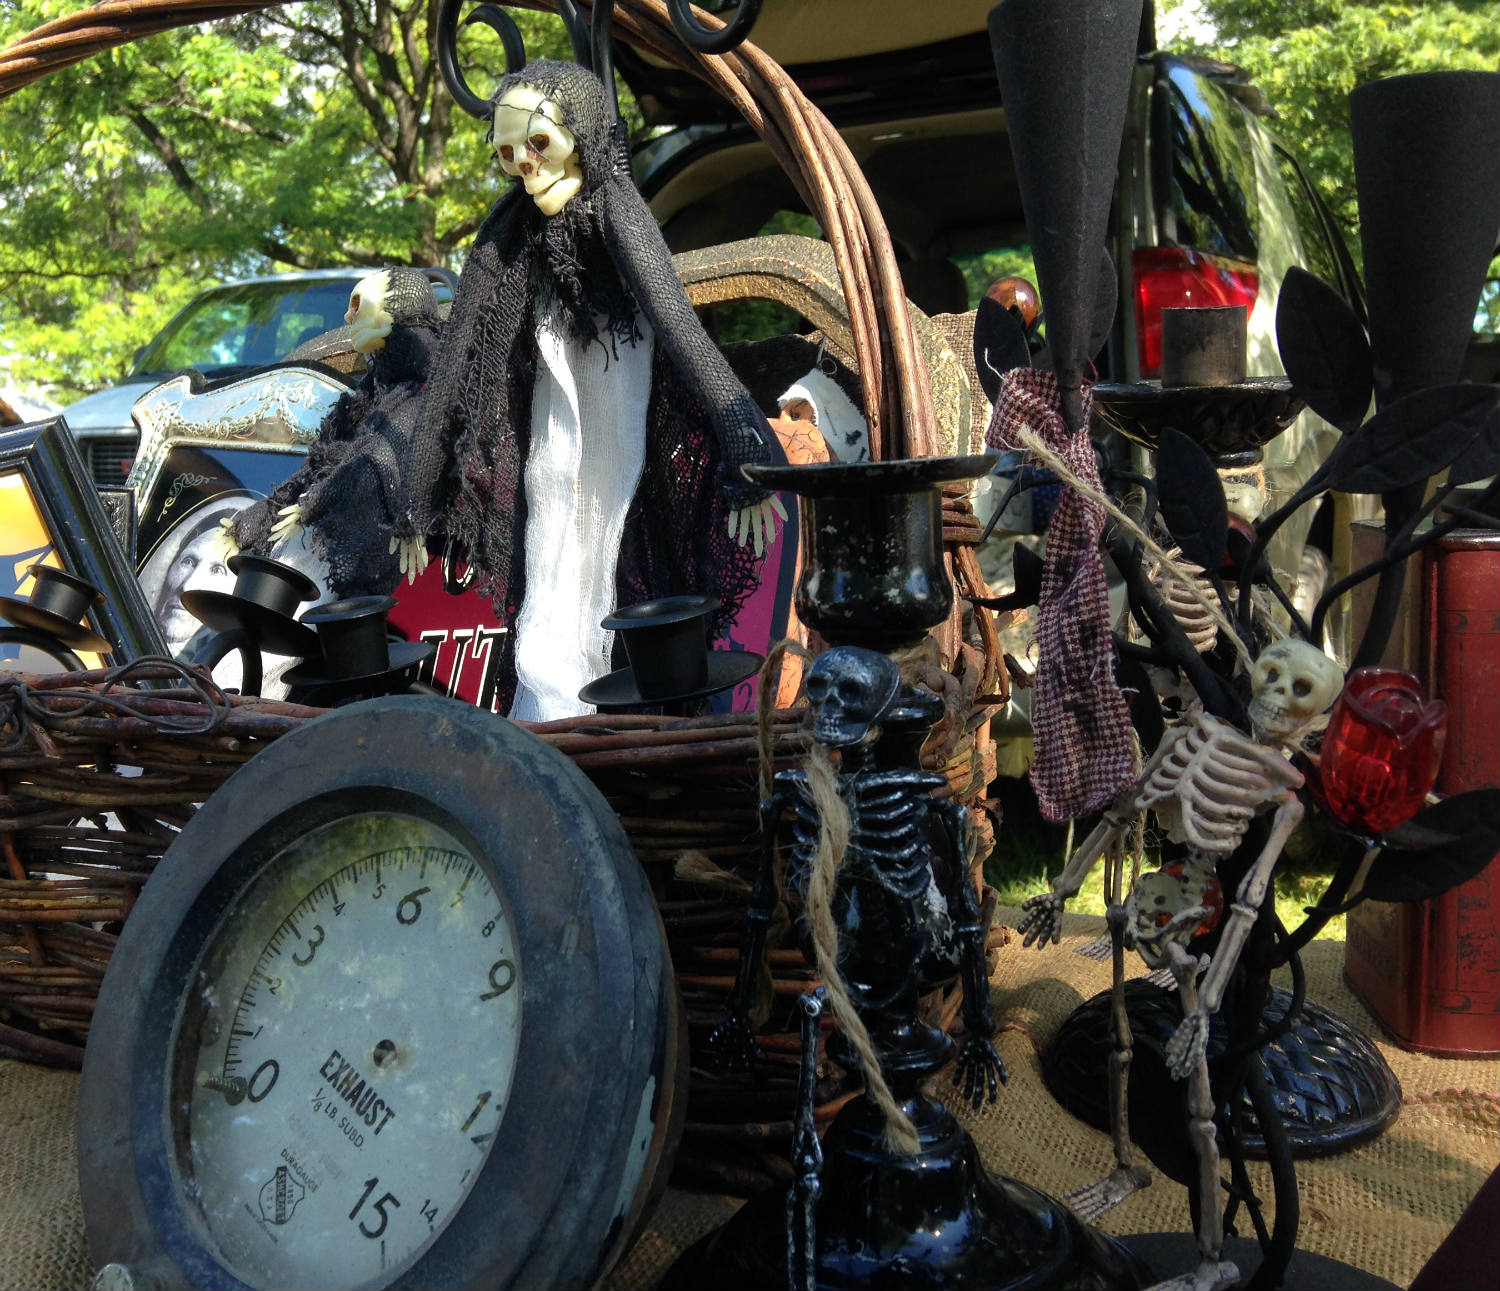 East Avon Flea Market - Skeletons